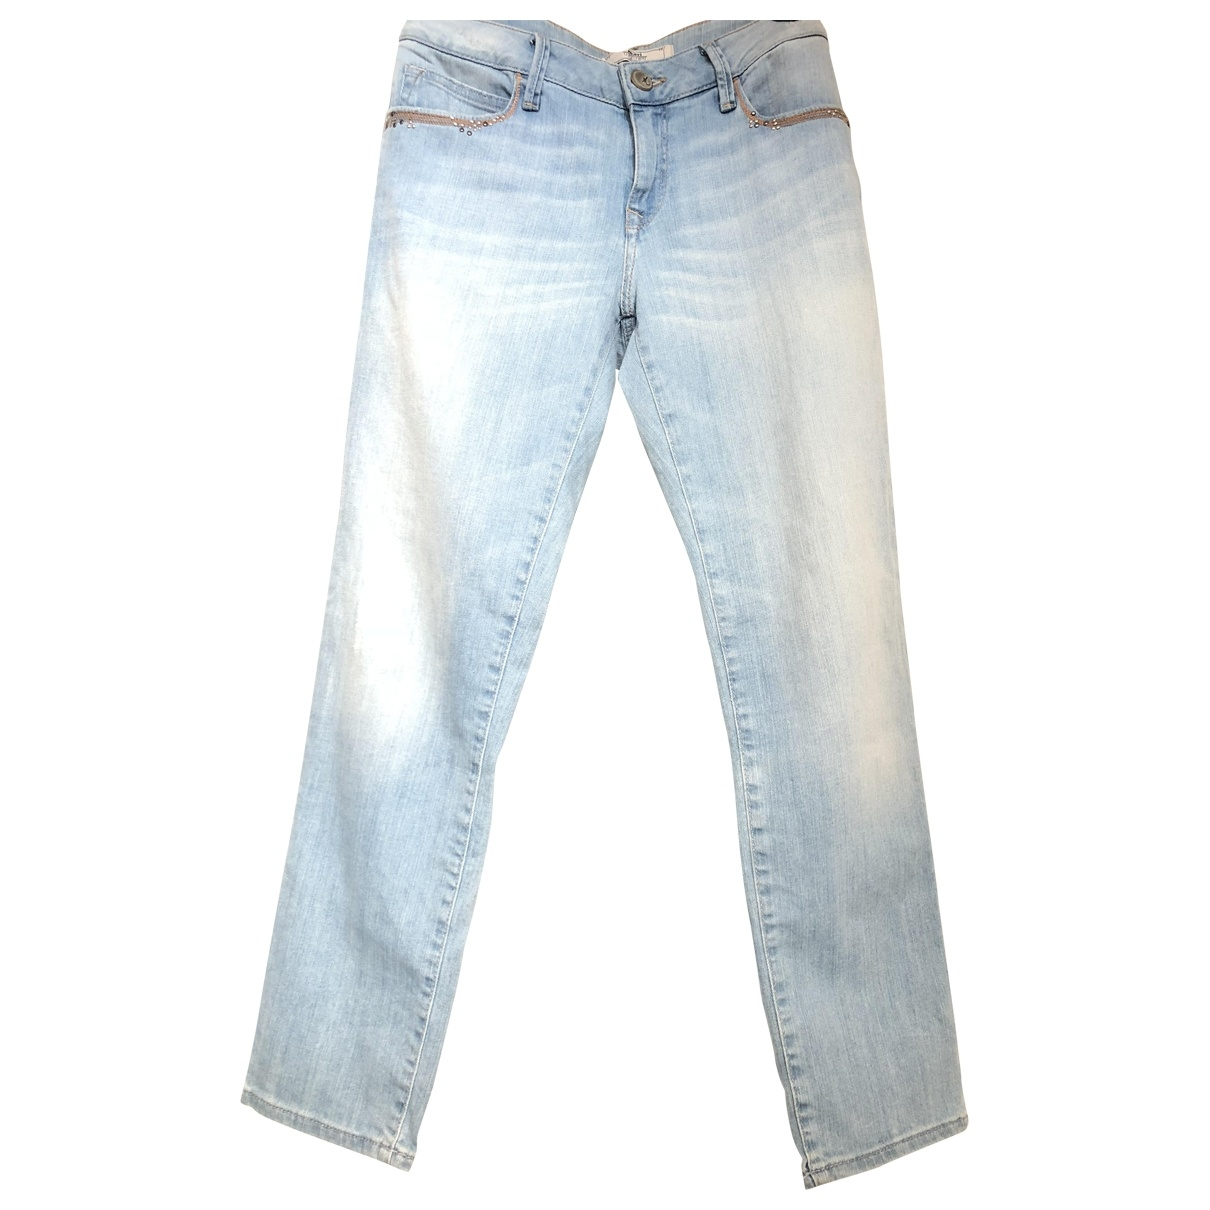 Mawi \N Blue Denim - Jeans Jeans for Women 29 US